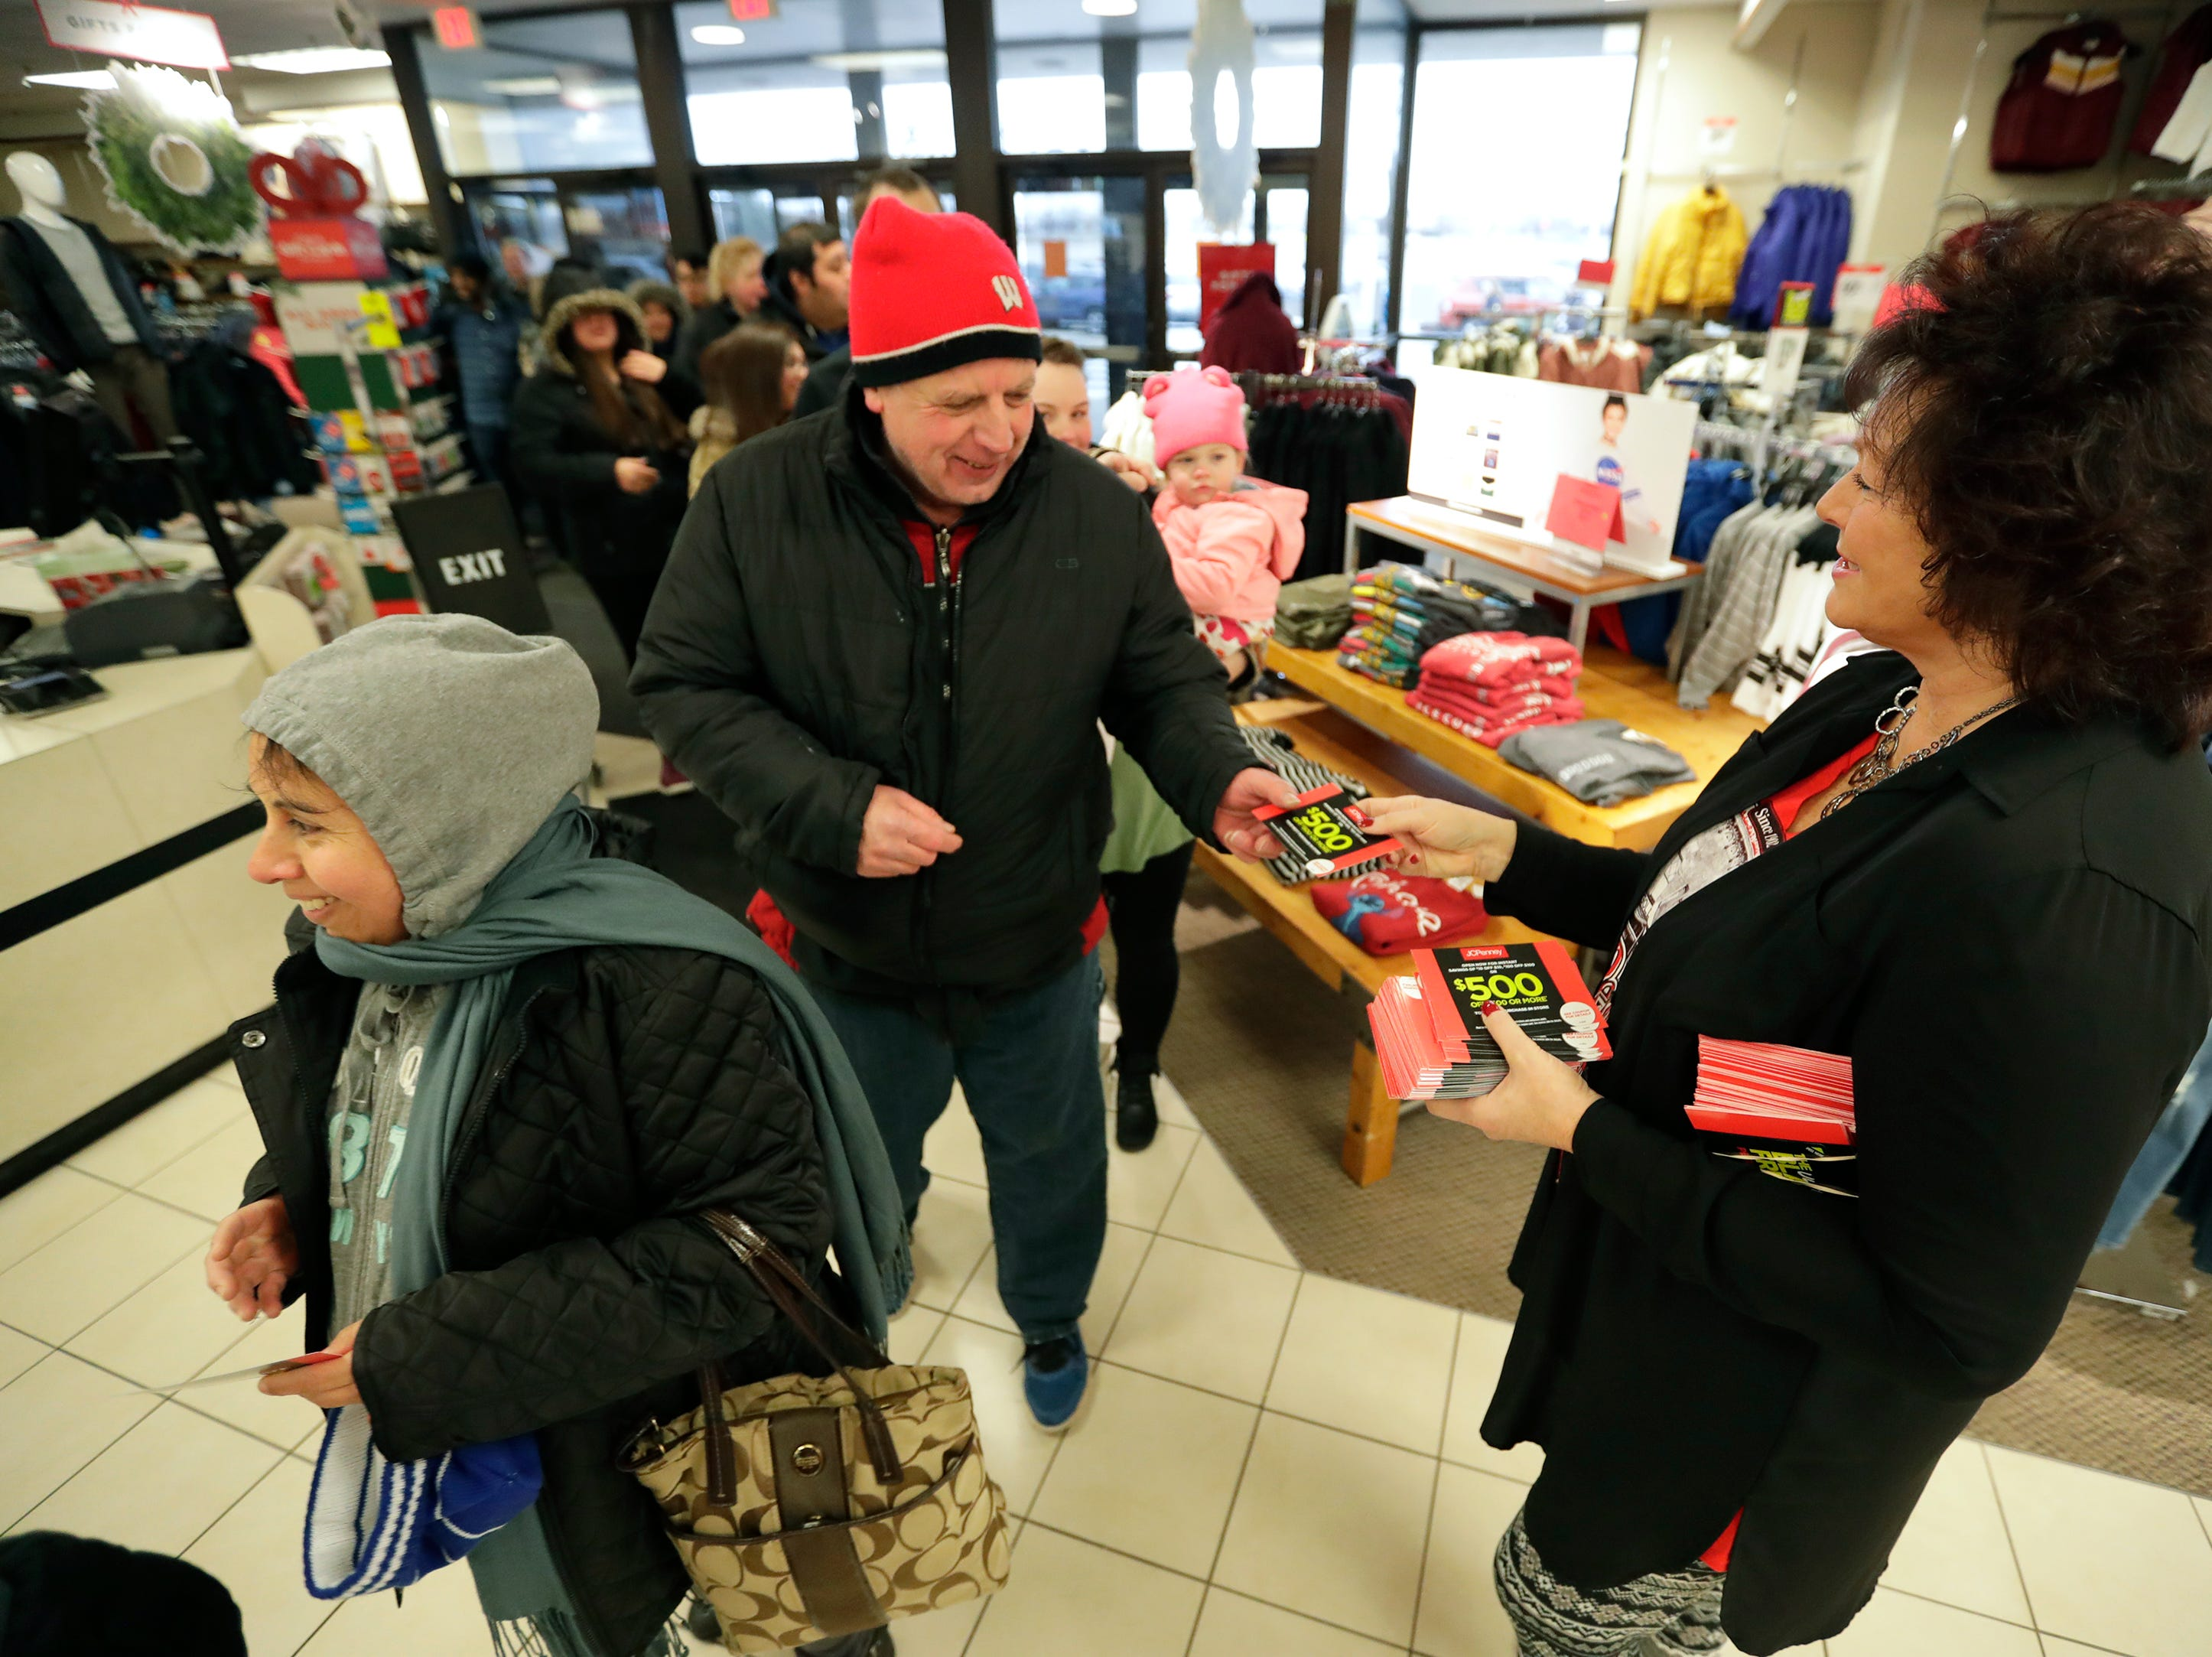 JCPenney employee Deb Kiley, right, hands out special coupons as customers enter the store looking for Black Friday deals Thursday, November 22, 2018, in Grand Chute, Wis. 